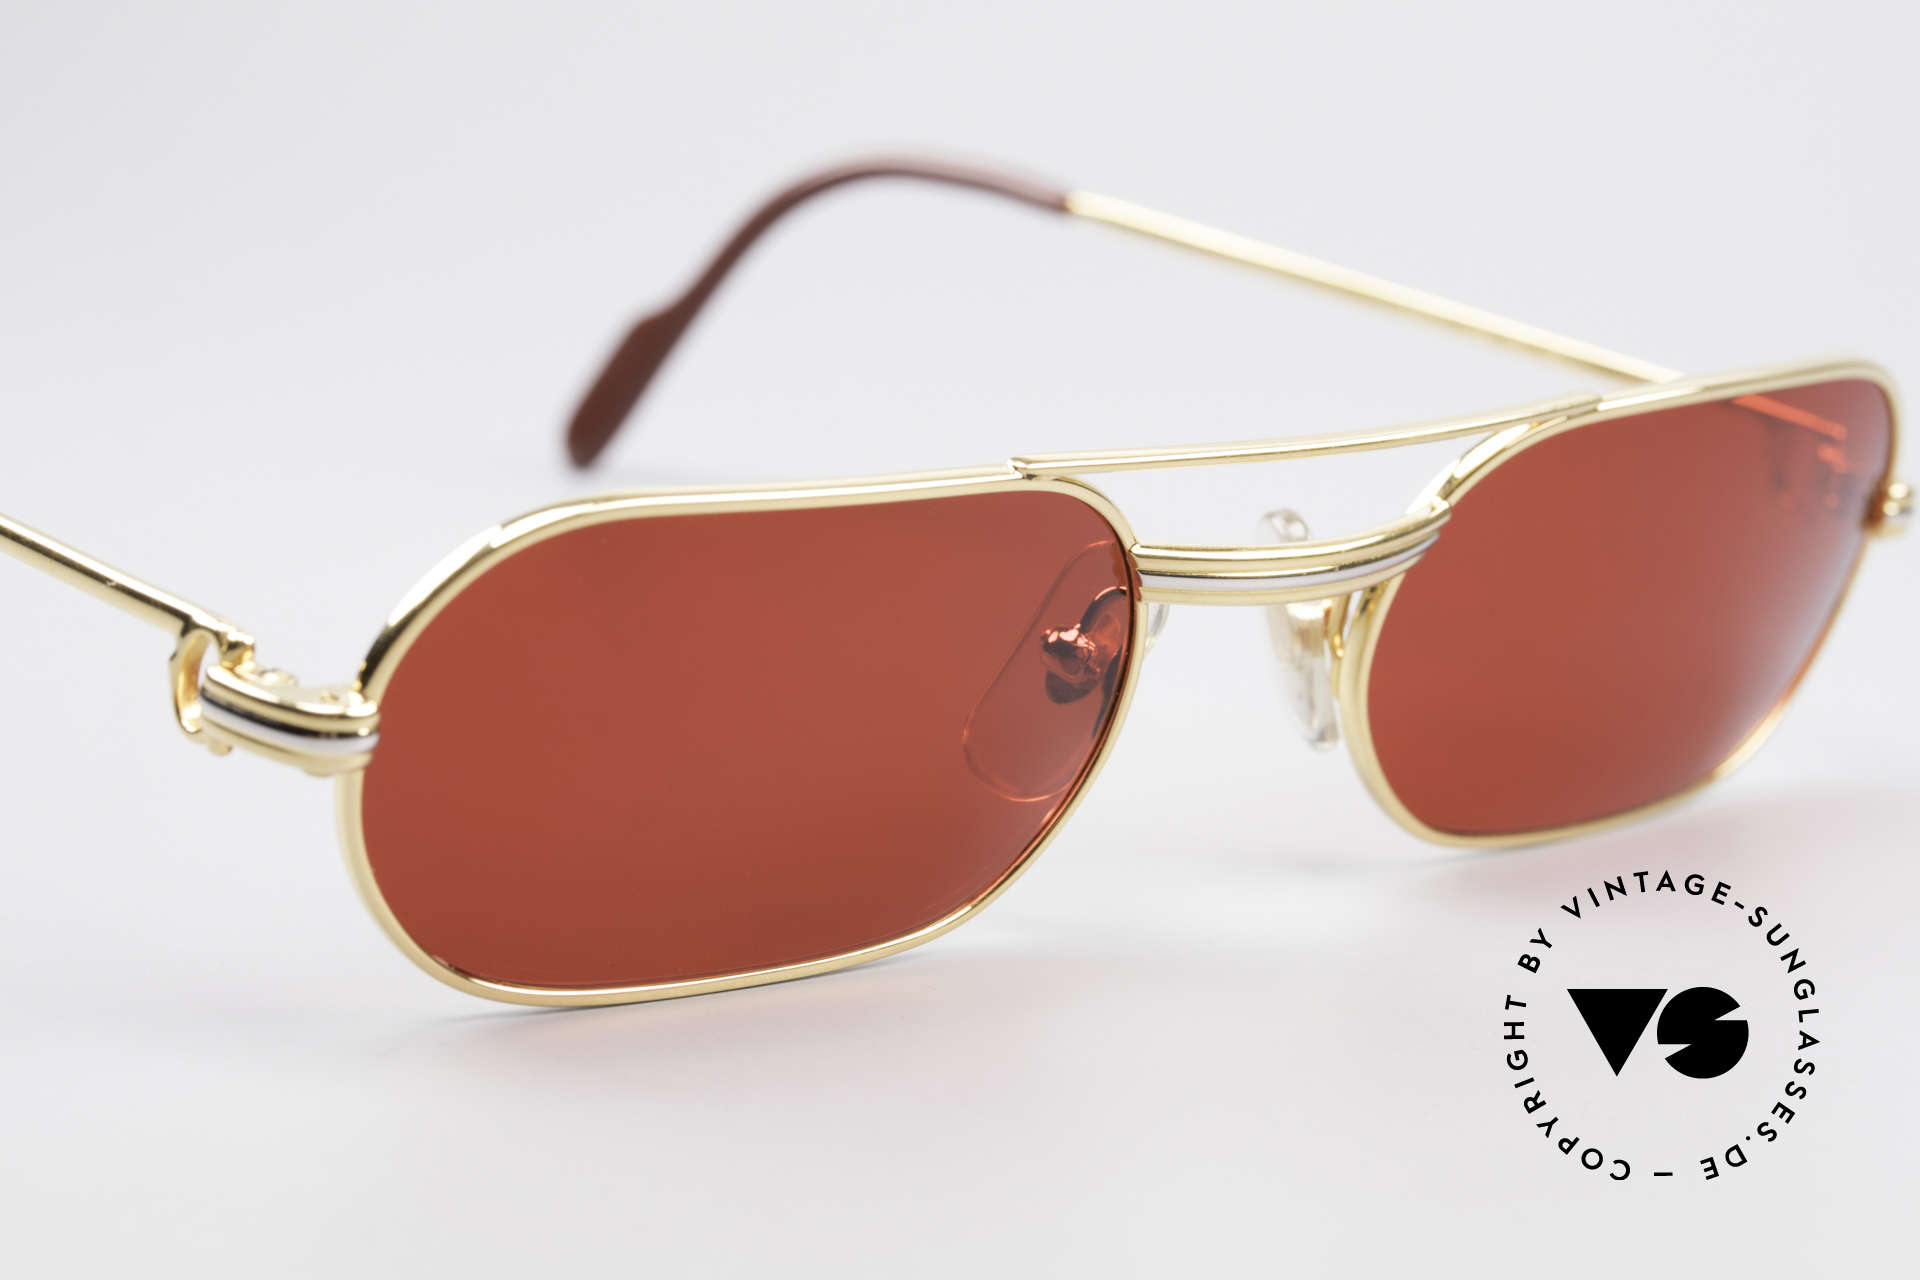 Cartier MUST LC - M 3D Red Luxury Sunglasses, with new CR39 plastic lenses in gaudy 3D-red; fancy, Made for Men